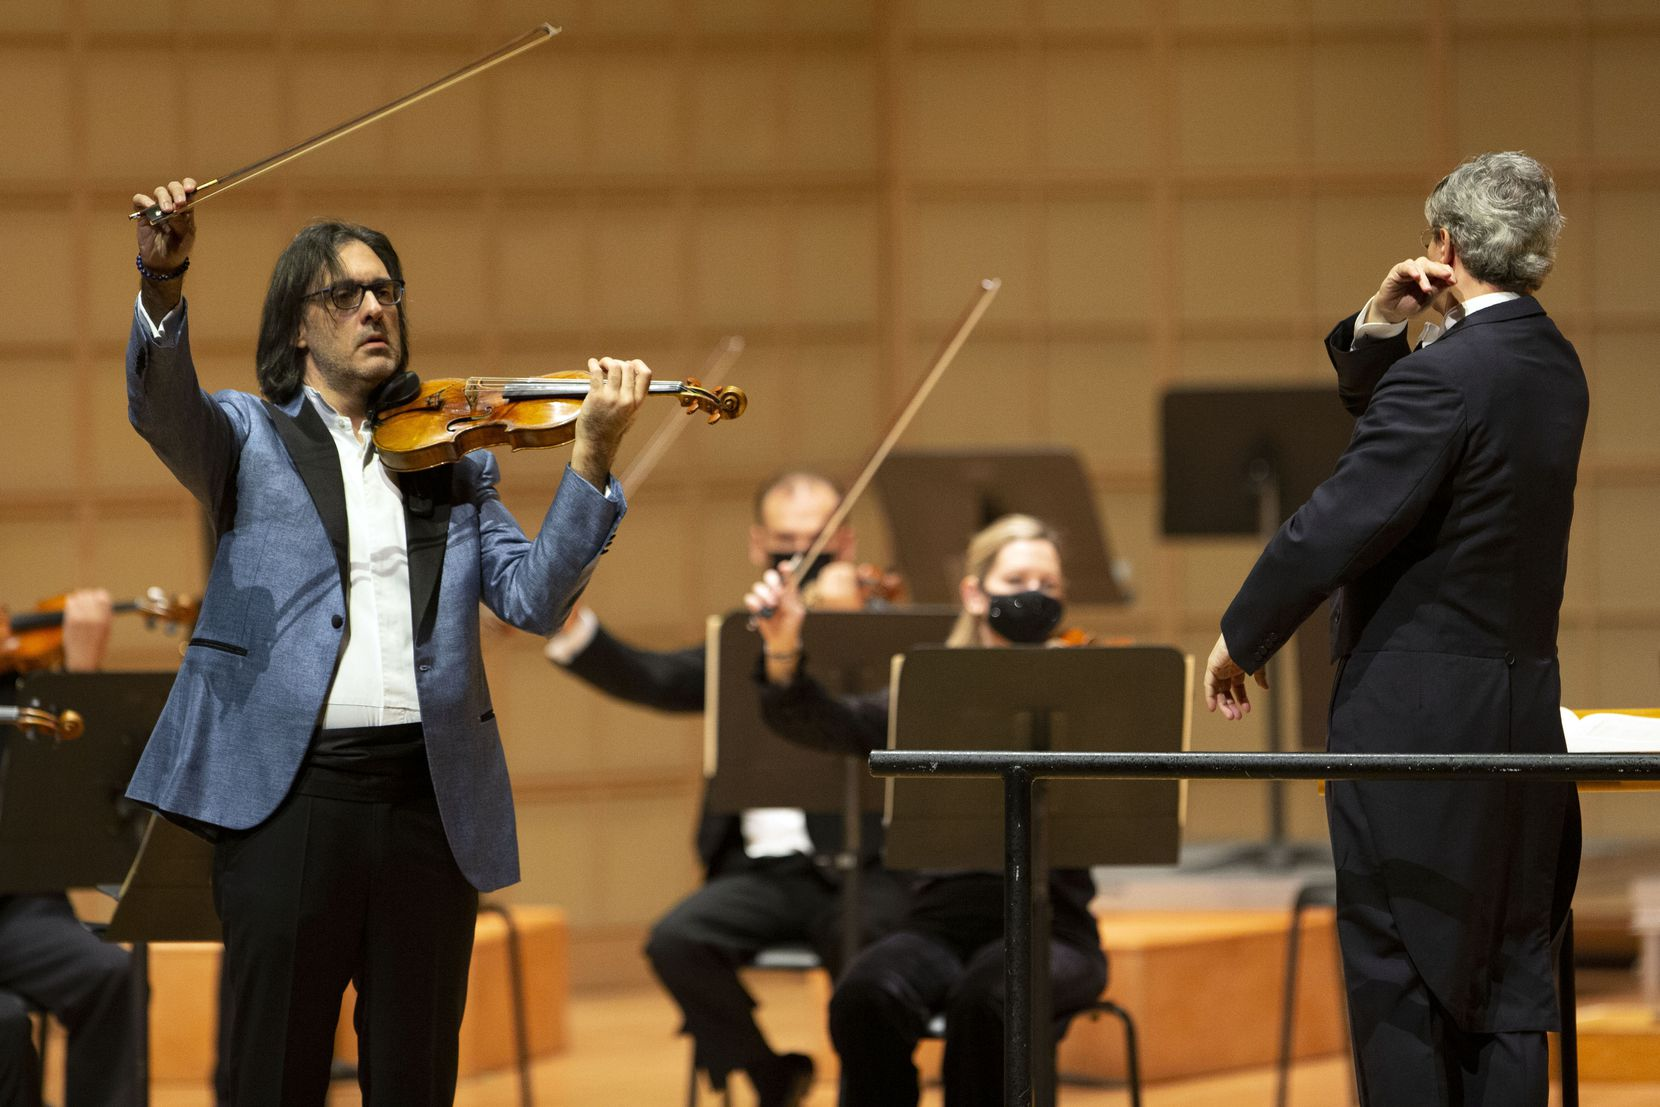 Violin soloist Leonidas Kavakos performs with music director Fabio Luisi and the Dallas Symphony Orchestra at the Meyerson Symphony Center.